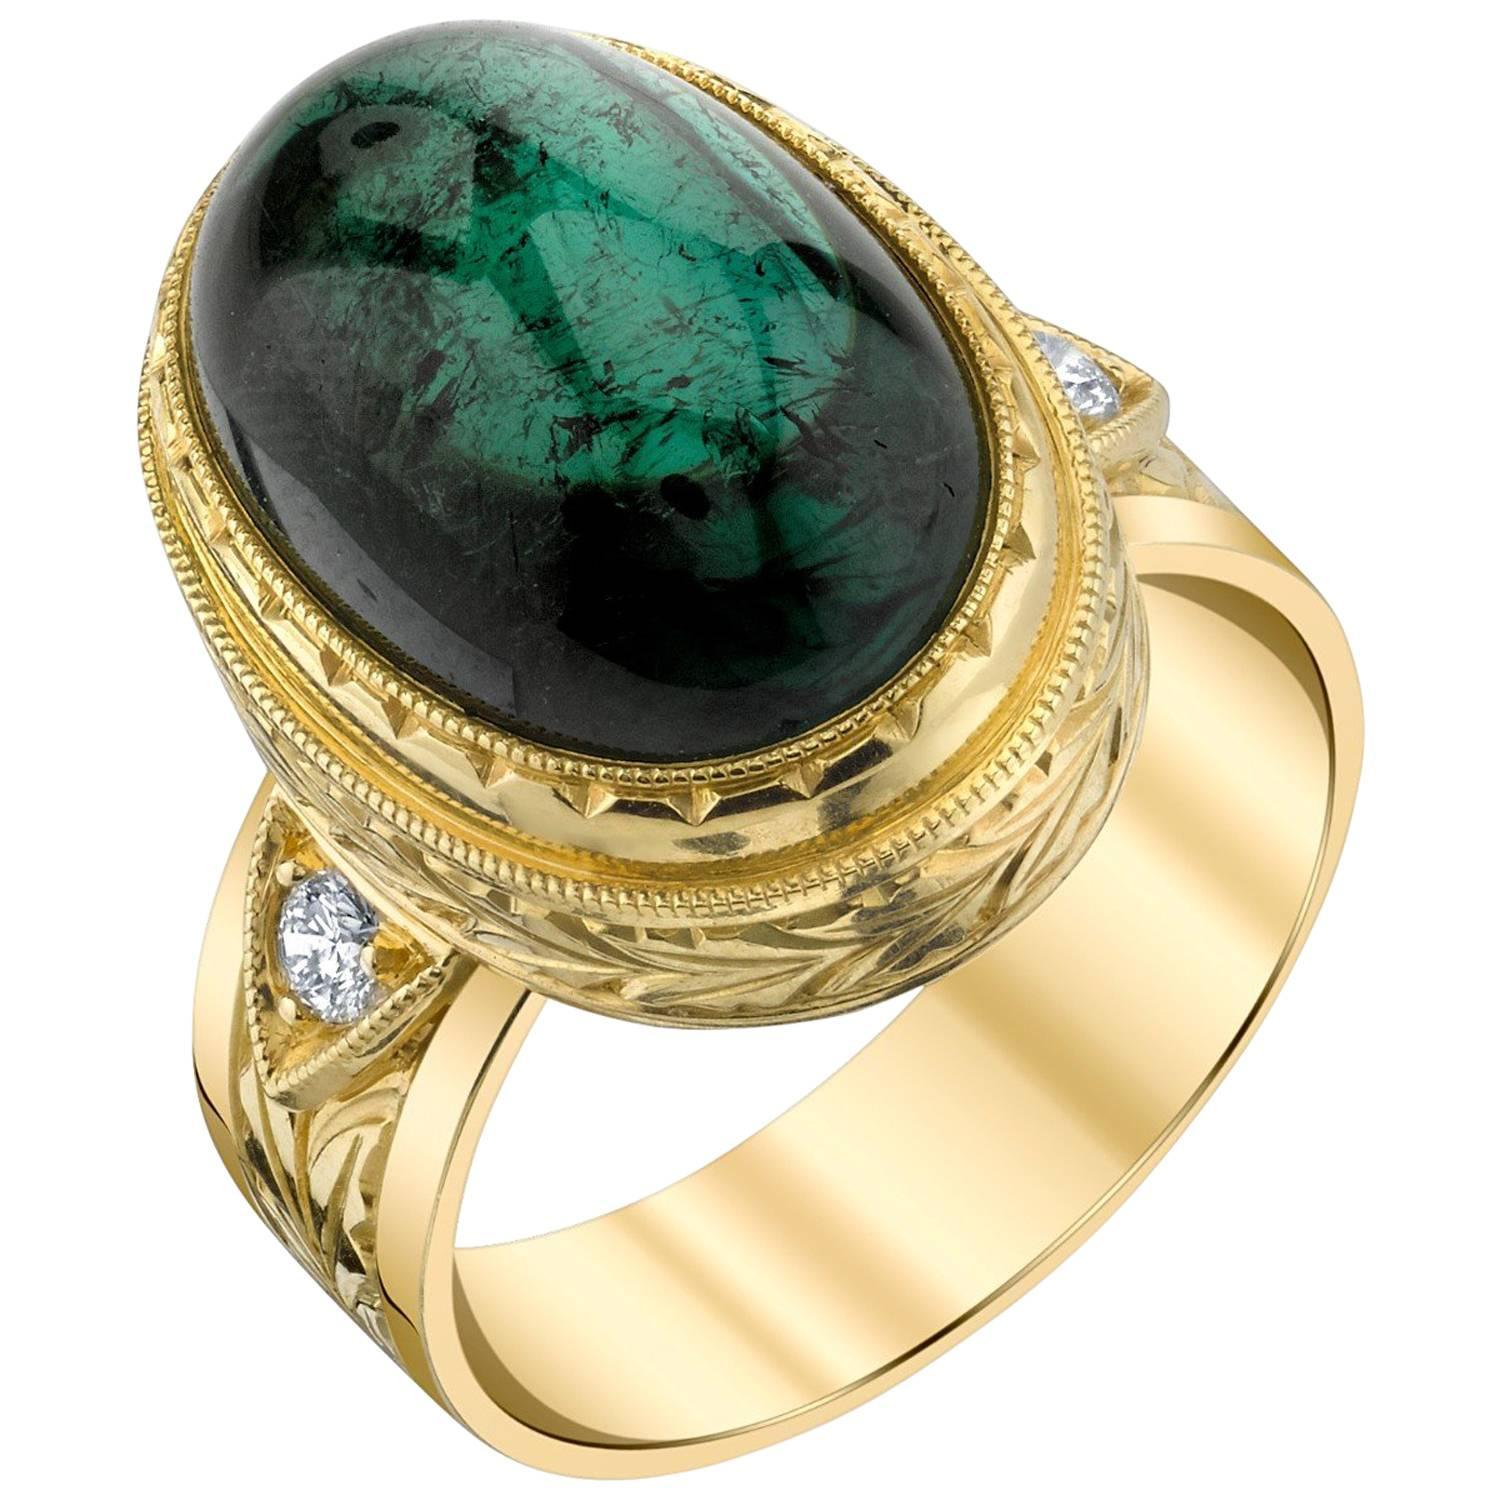 Green Tourmaline Cabochon, Diamond, Yellow Gold Bezel Engraved Band Ring